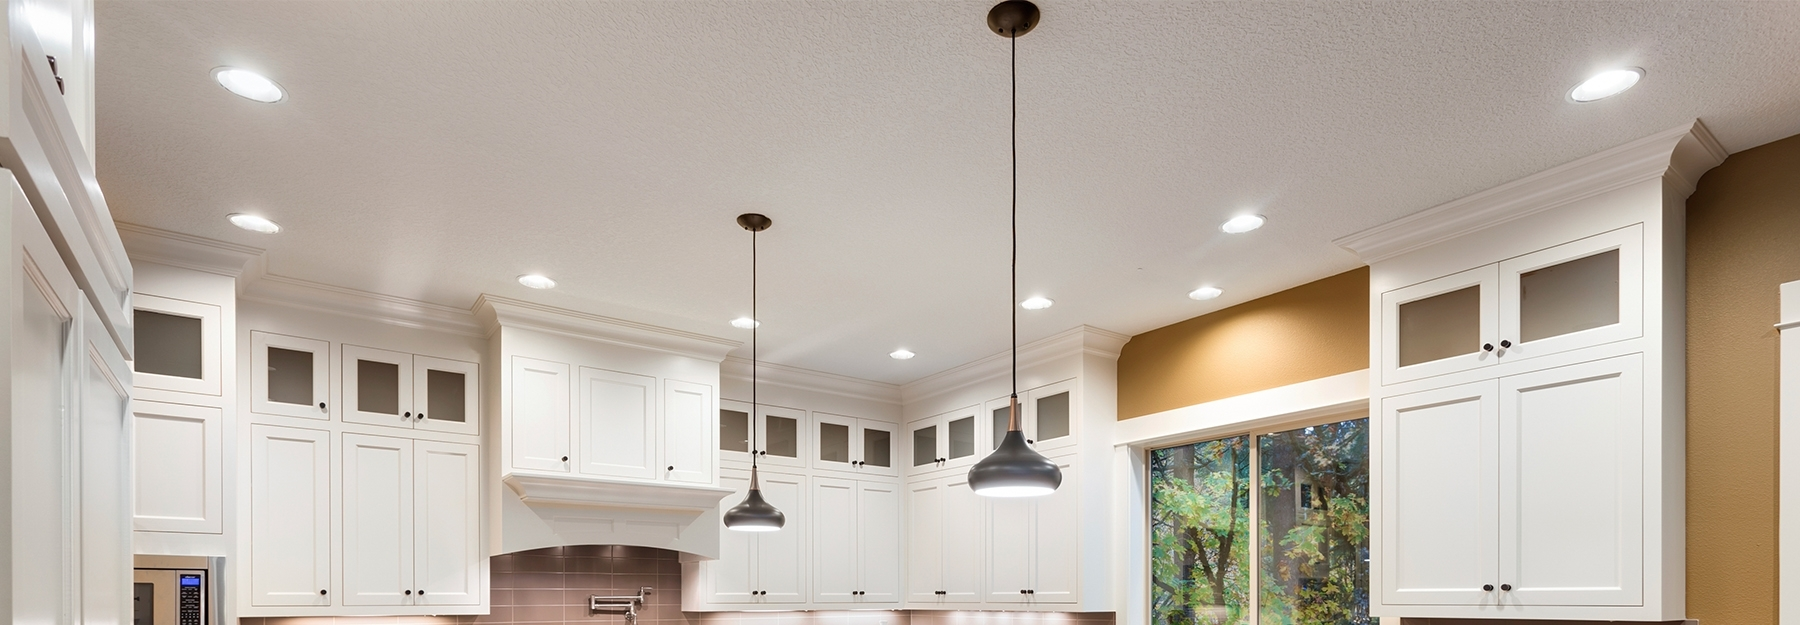 Kitchen cabinets and lighting image